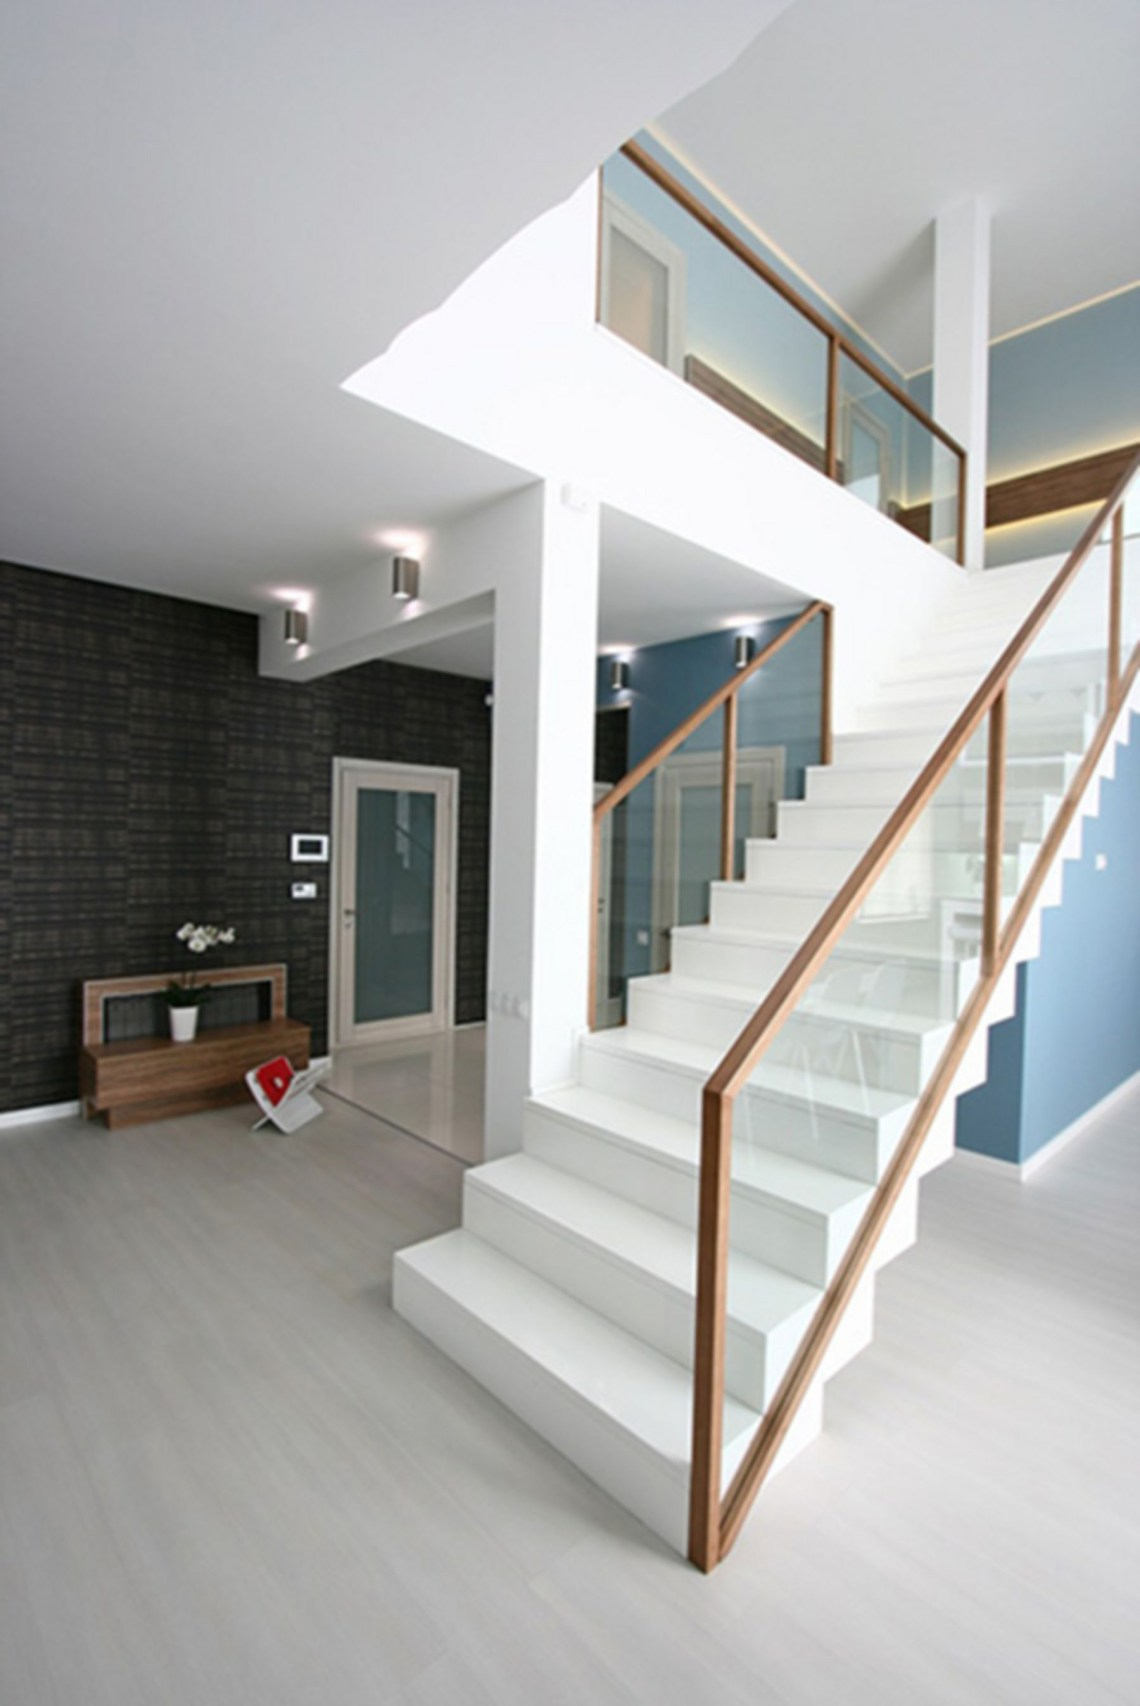 10 Awesome Stairs Indoor Design Ideas To Make Your Home